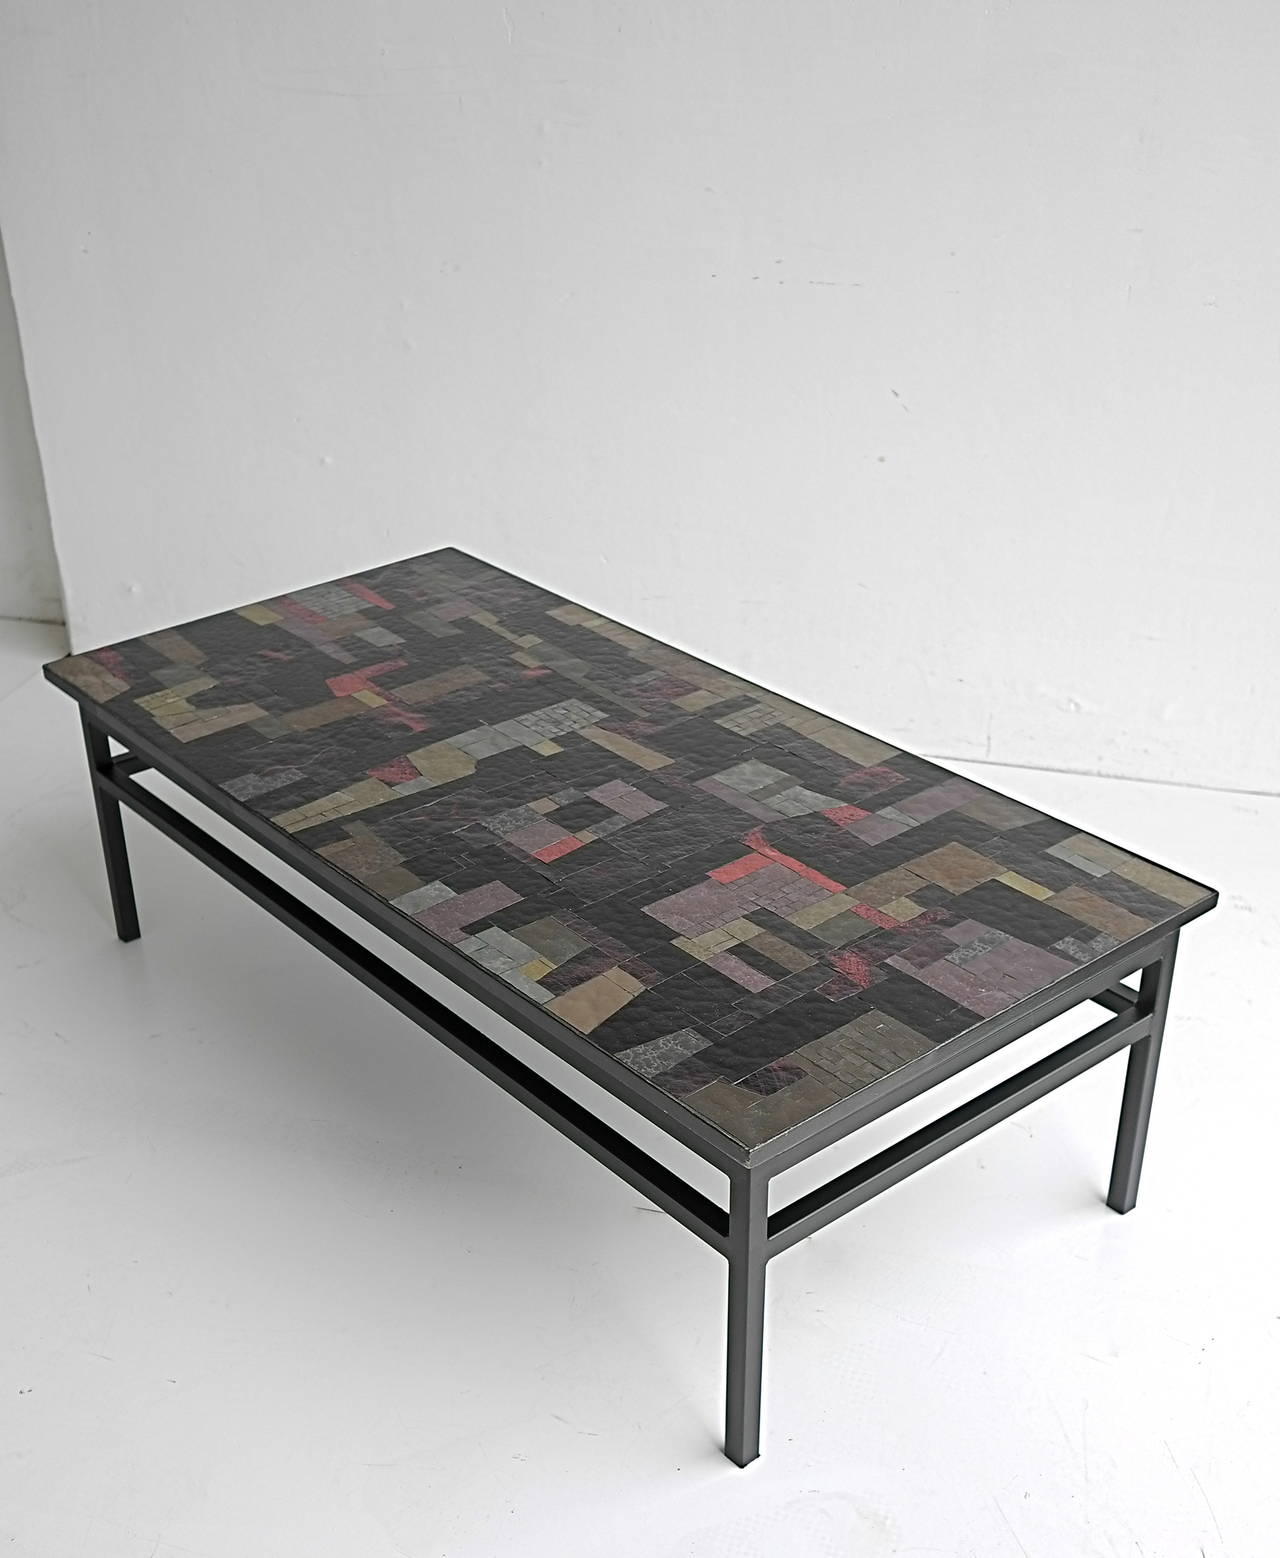 Pia Manu Multi Colored Glass Art Coffee Table At 1stdibs